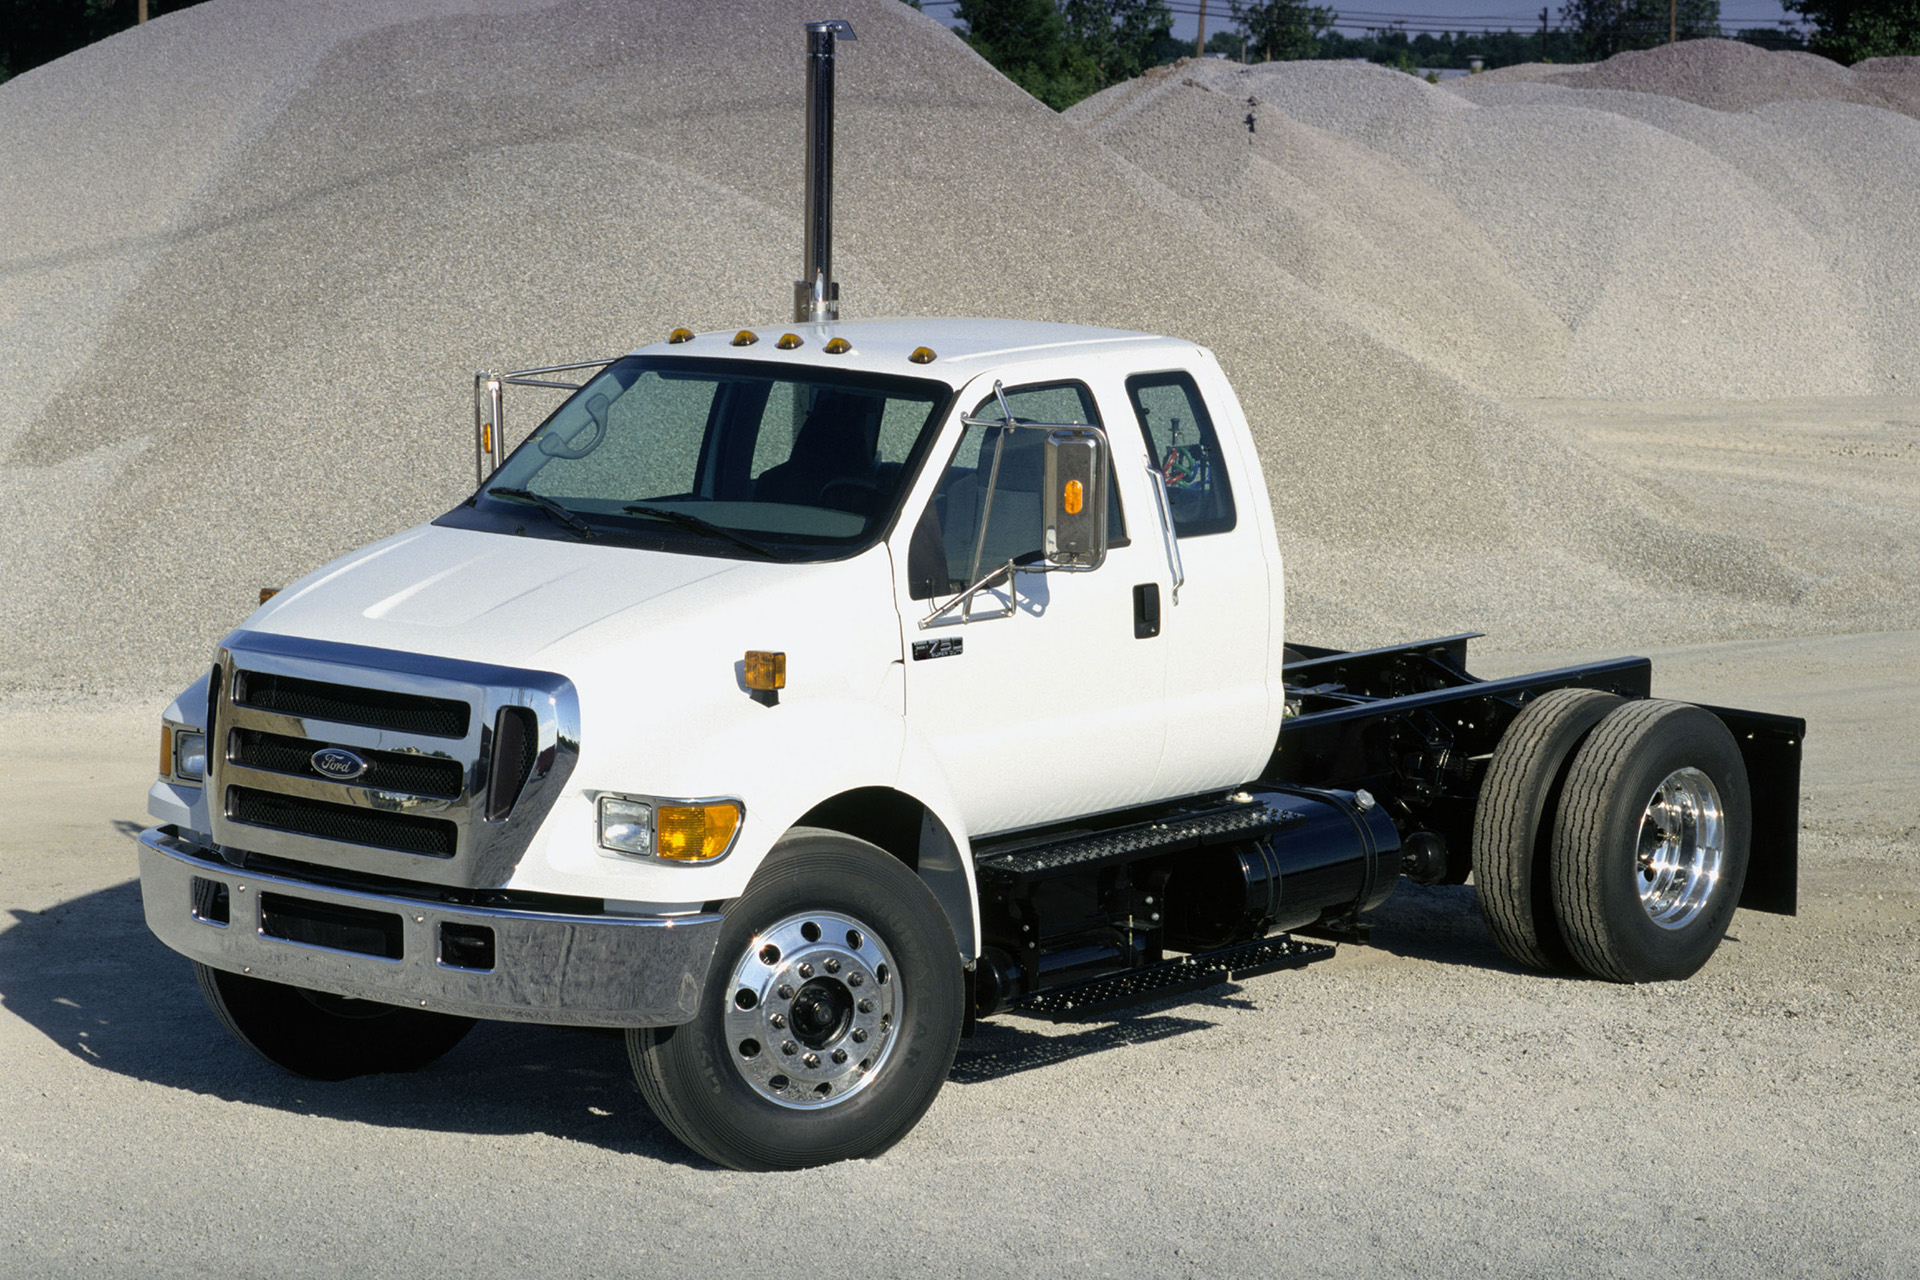 You can vote for this Ford F-750 photo